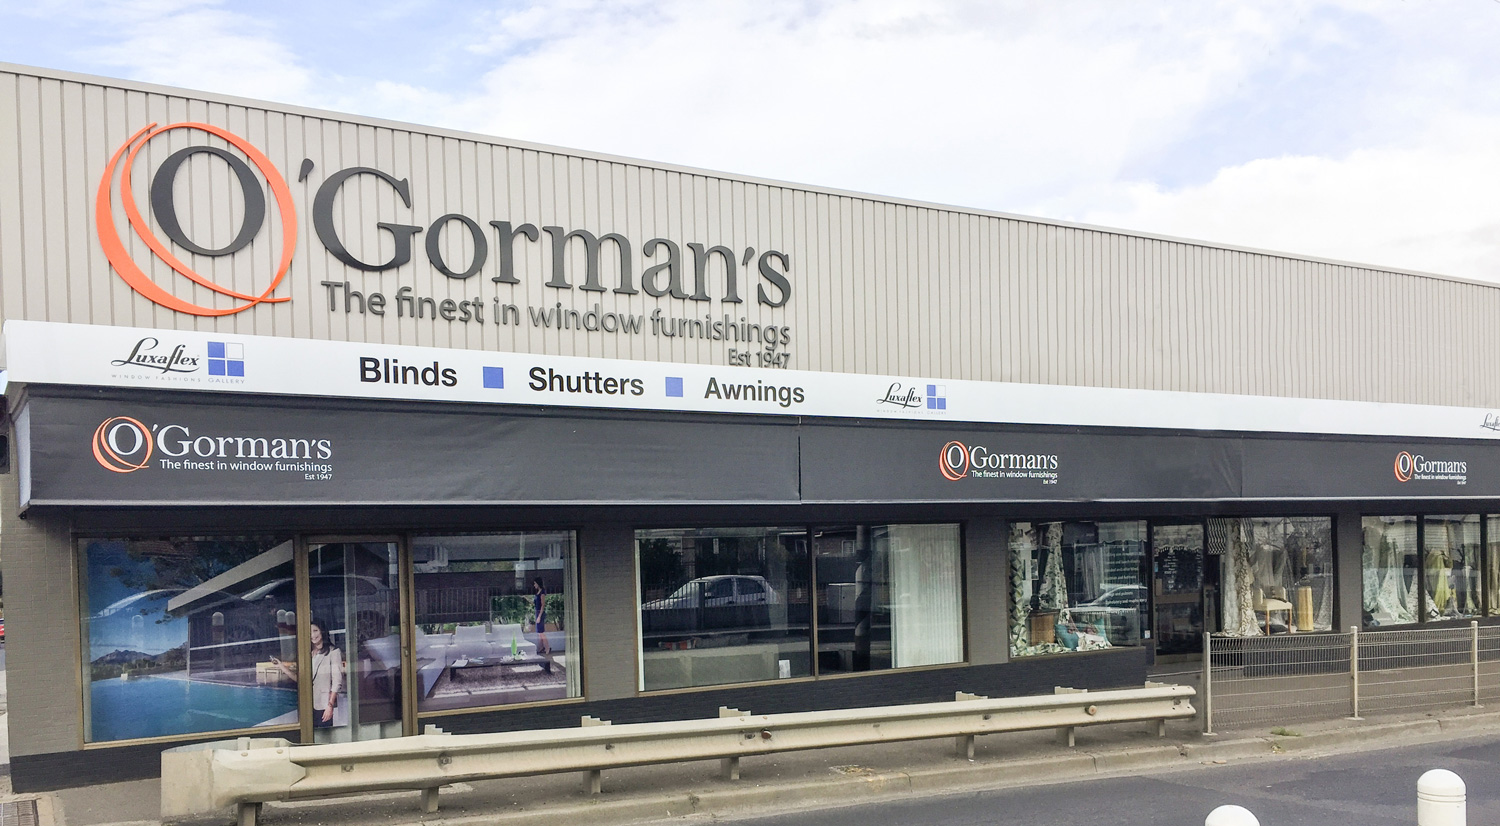 O'Gorman's Shopfront